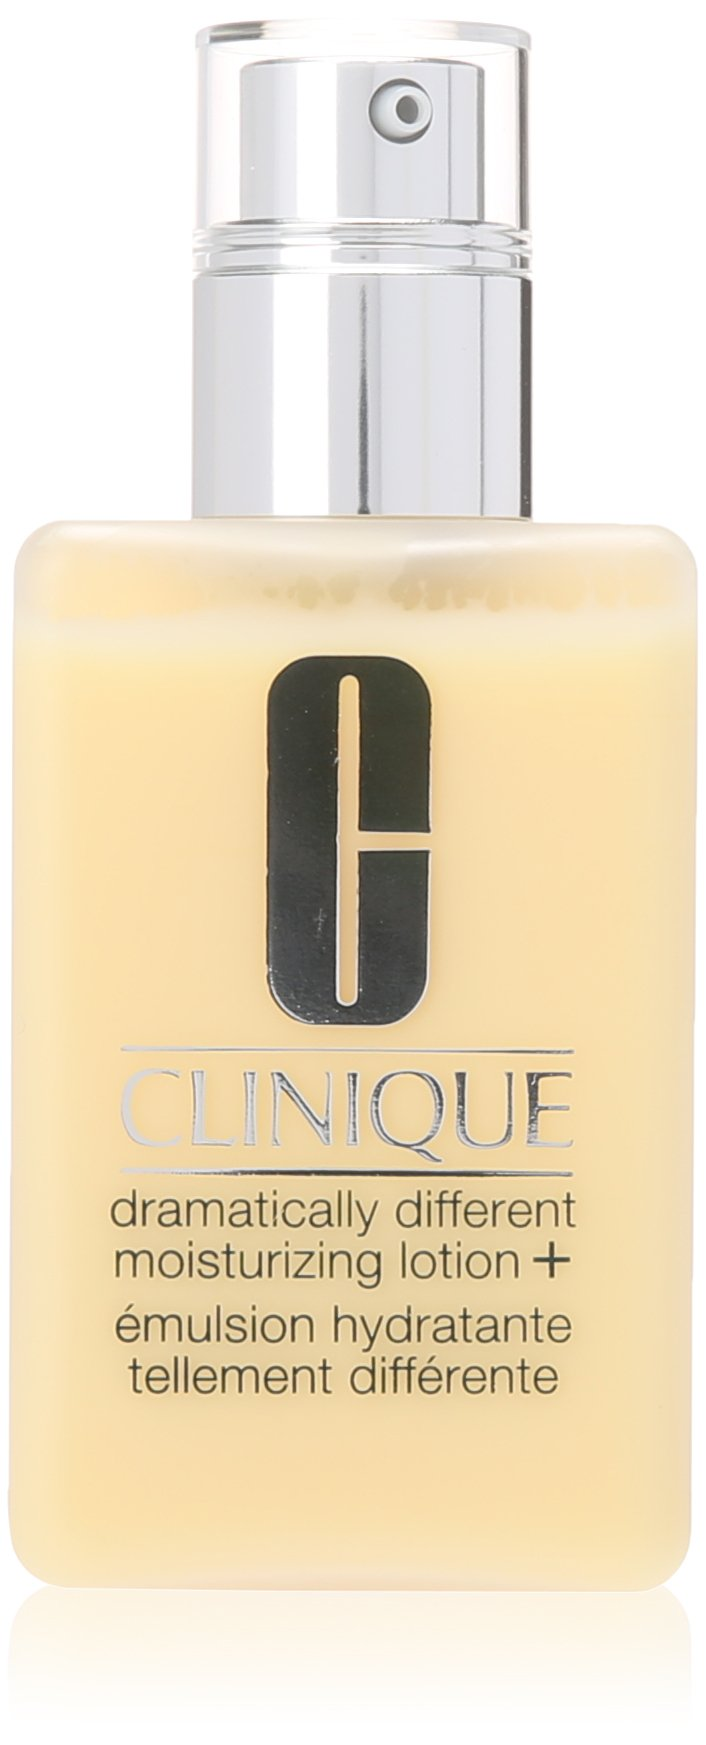 Clinique Dramatically Different Moisturizing Lotion, 6.7 Ounce by Clinique